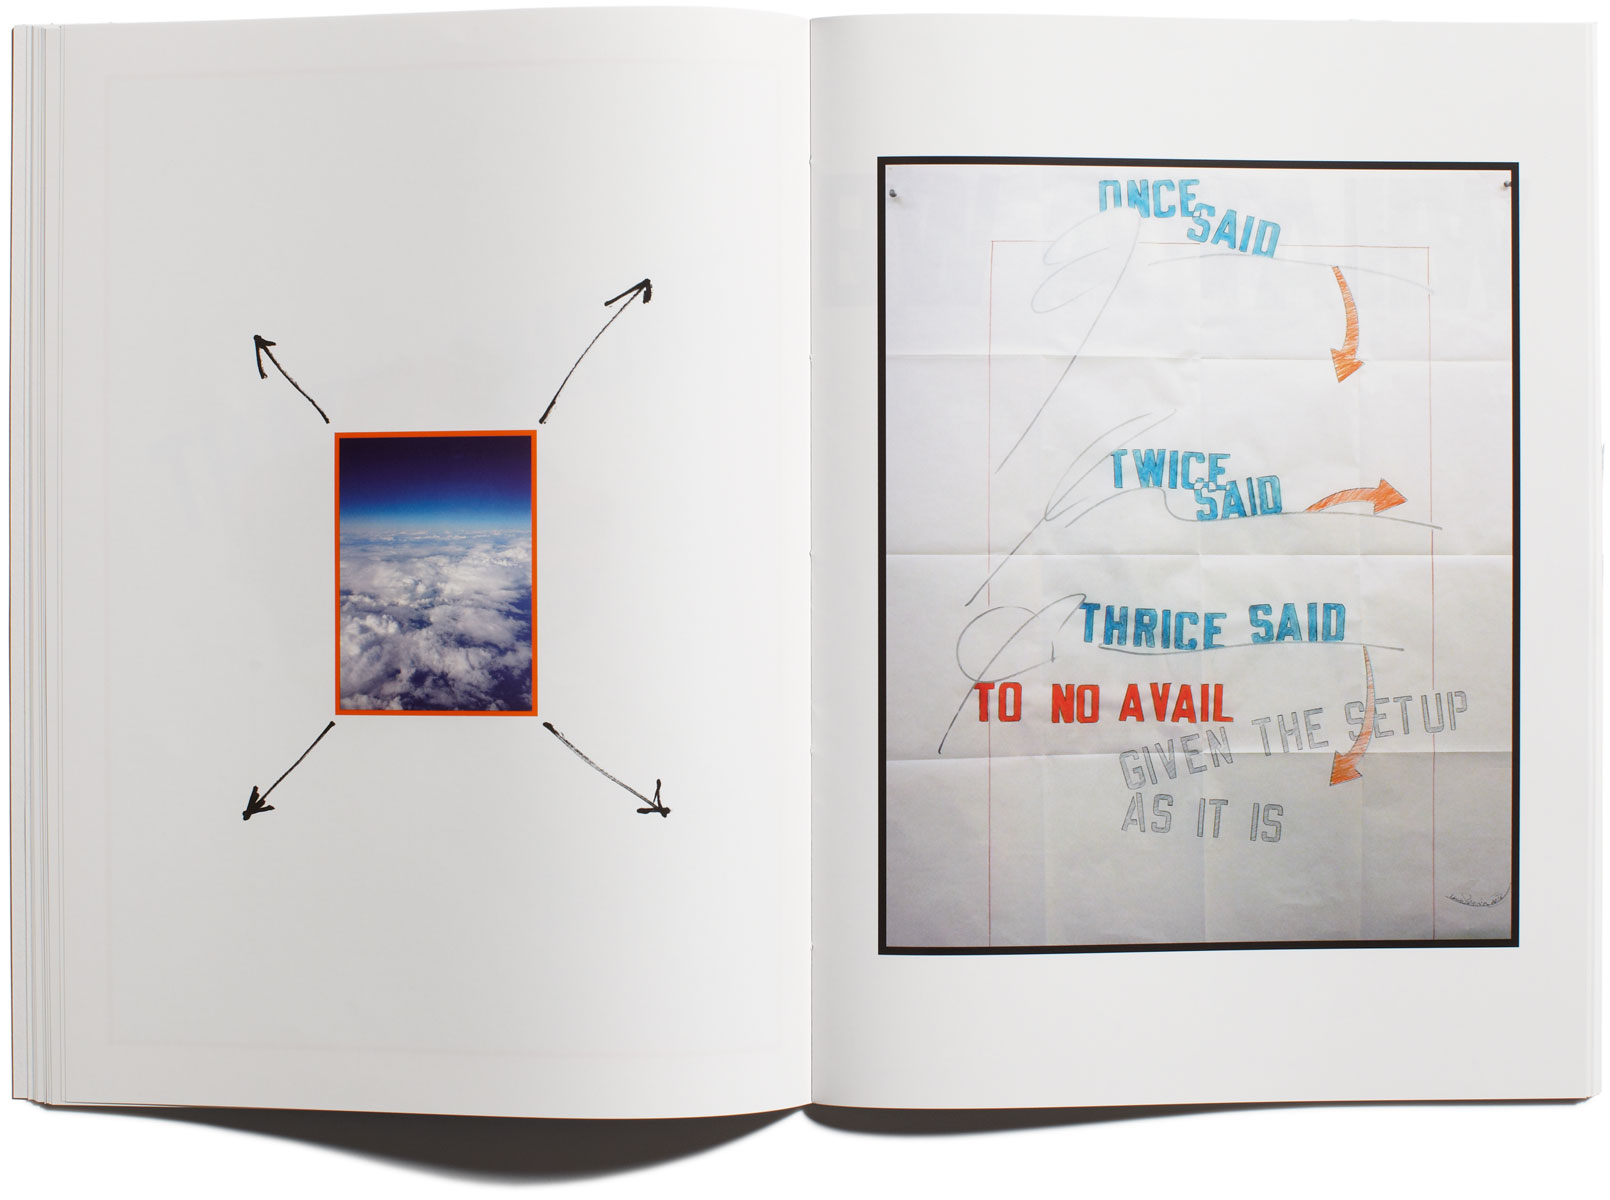 Browns Editions, Browns Editions Publishing, Browns Editions Books, Browns Editions Jonathan Ellery Lawrence Weiner, Browns Editions Here It Is Here It Aint, Browns Editions Jonathan Ellery Lawrence Weiner Here It Is Here It Aint